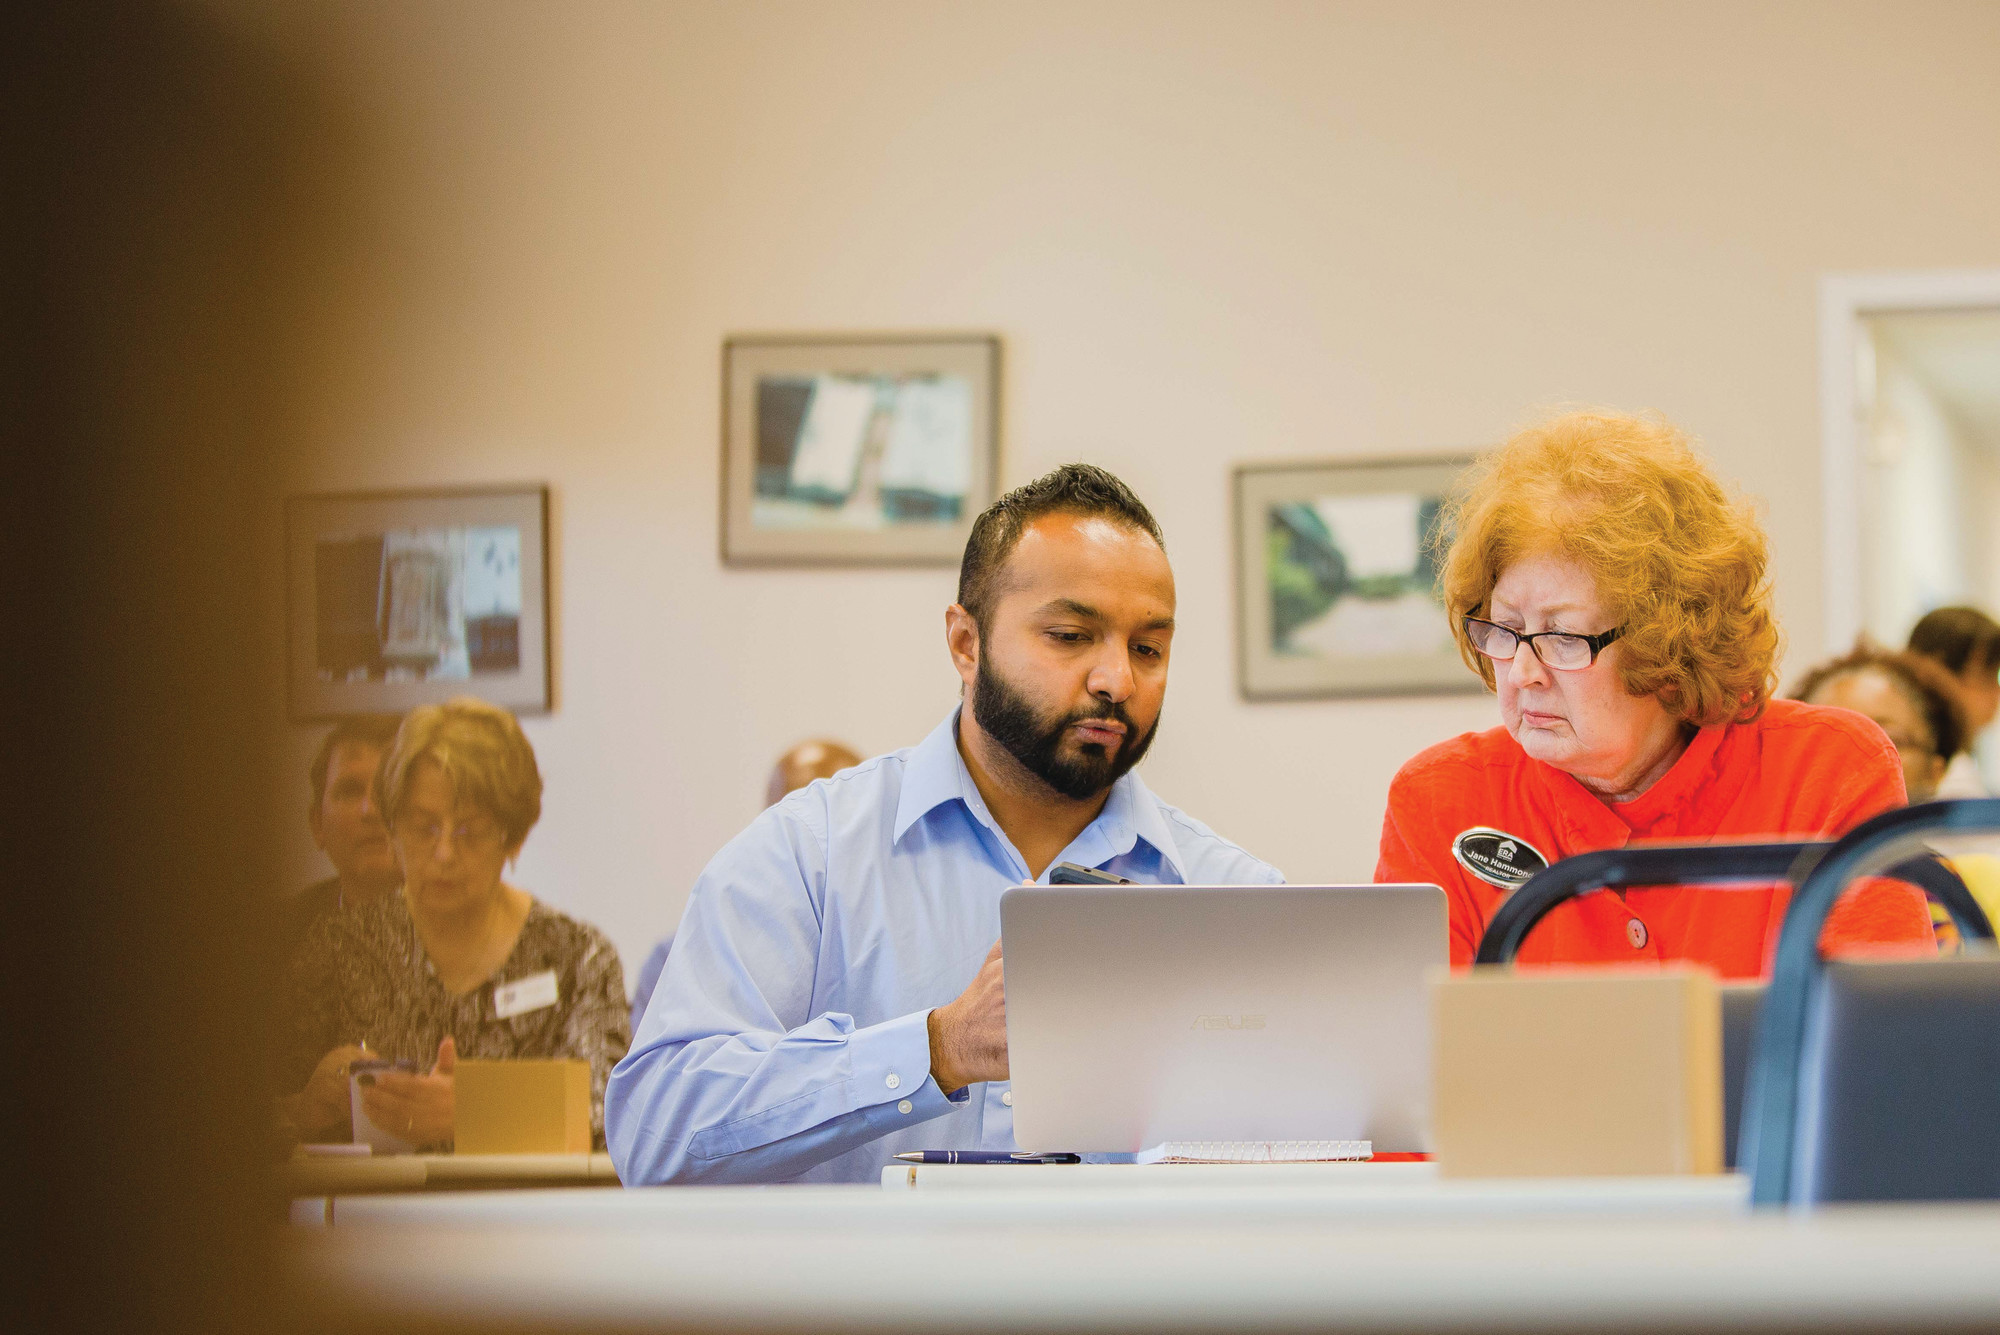 Anand Vora, left, founder of the PORCHD mobile device application, assists local Realtor Jane Hammond with using the app on Wednesday during a briefing on the newly released product.